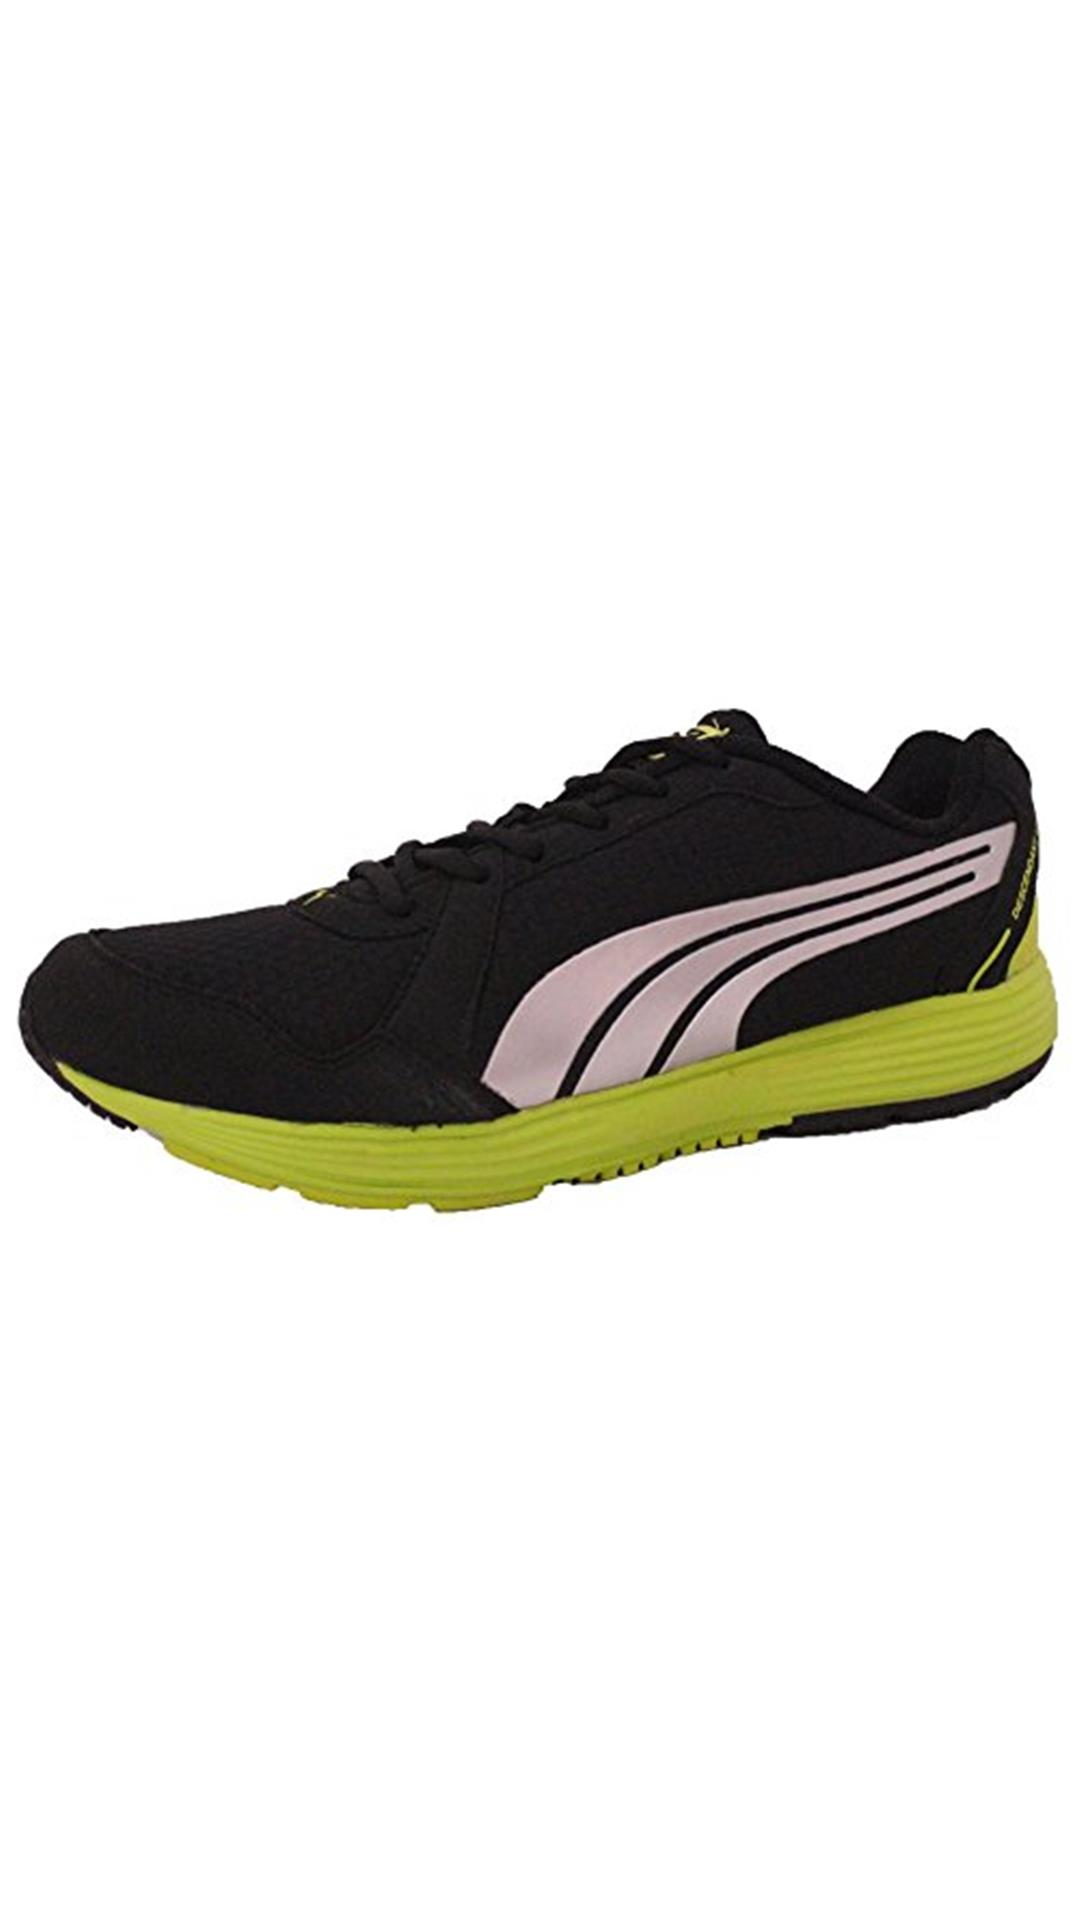 Puma Men's Descendant v2 IDP Black-Puma Silver-Lime Punch Sneakers - 8 UK/India (42 EU)